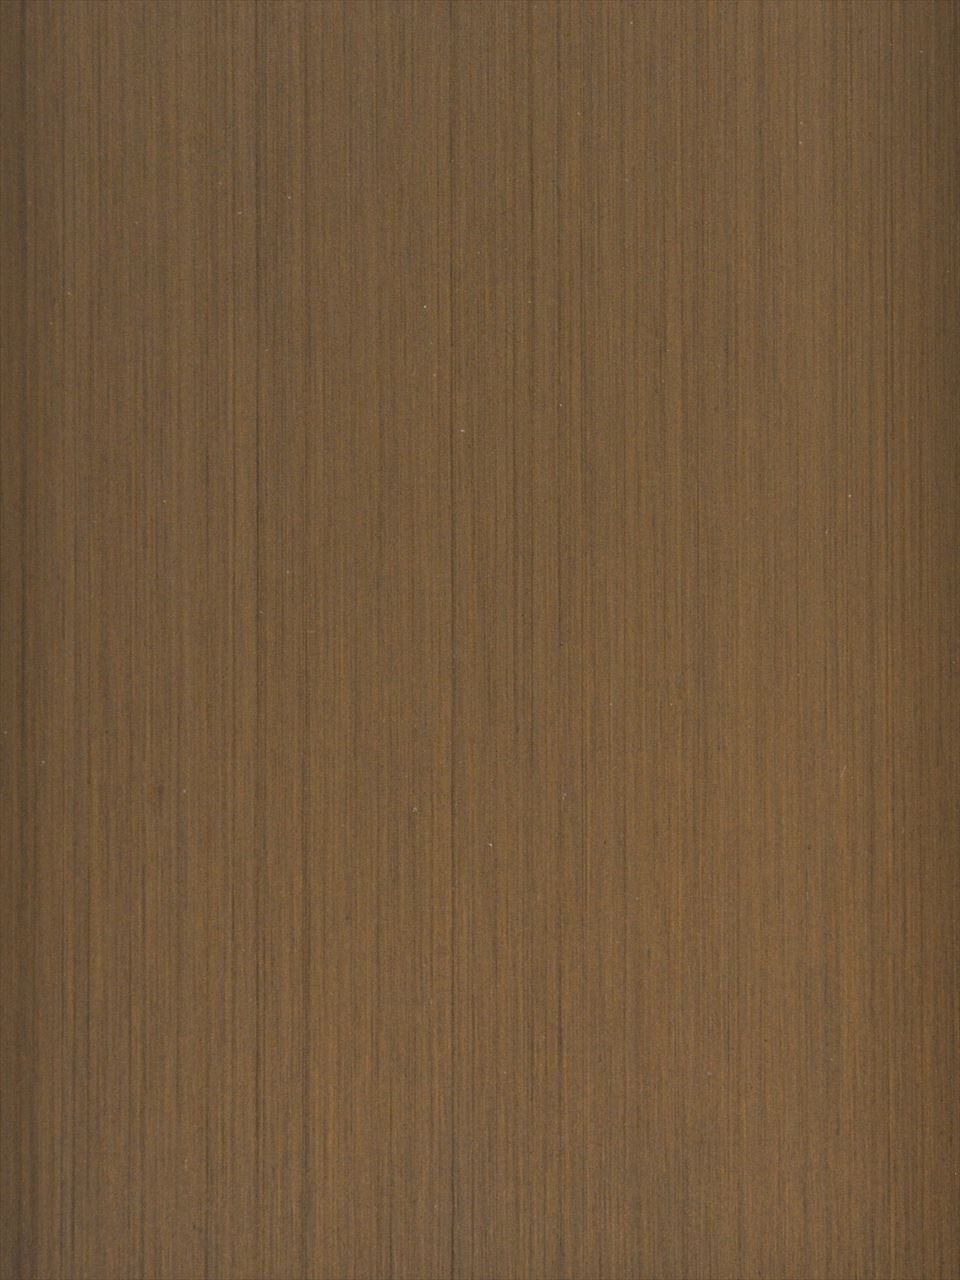 Bronze Finish Samples|kikukawa